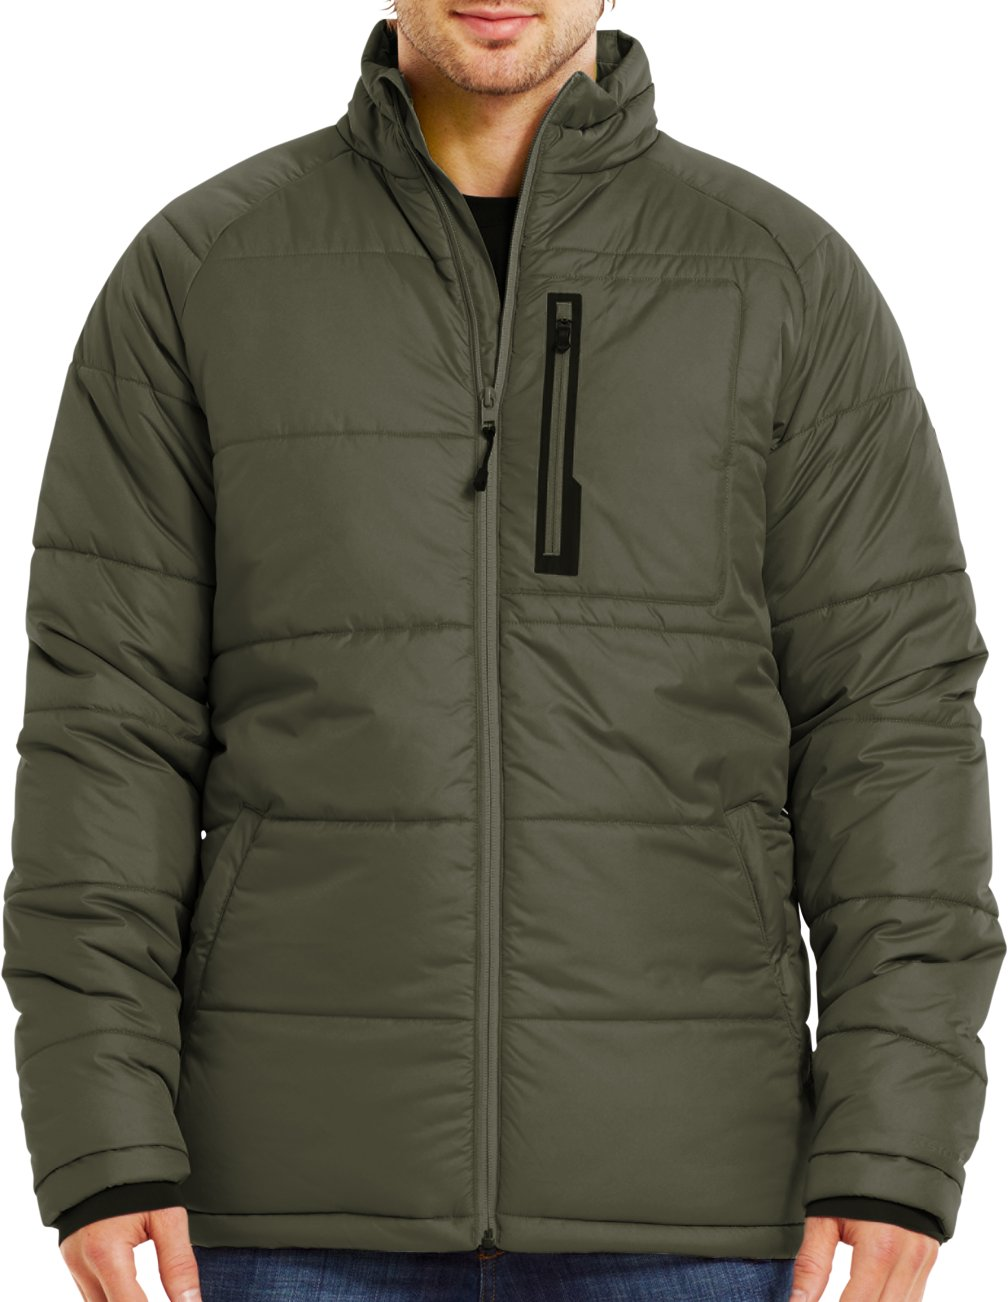 Men's ColdGear® Infrared Alpinlite Max Jacket, GREENHEAD, zoomed image